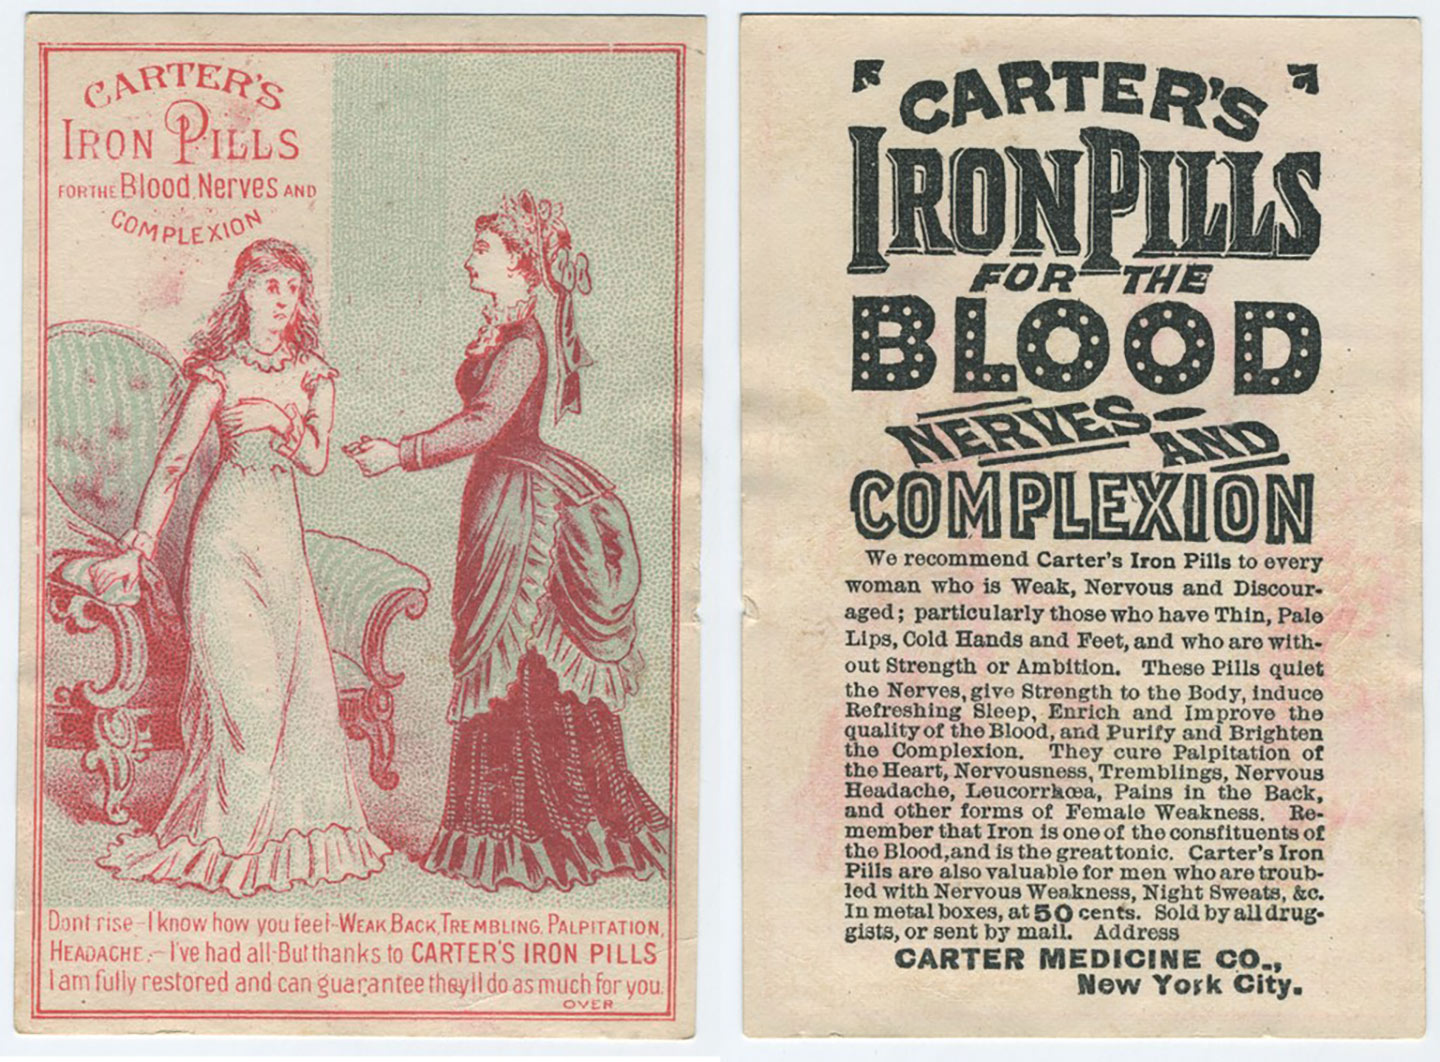 Advertisement by Carter's Medicine Co